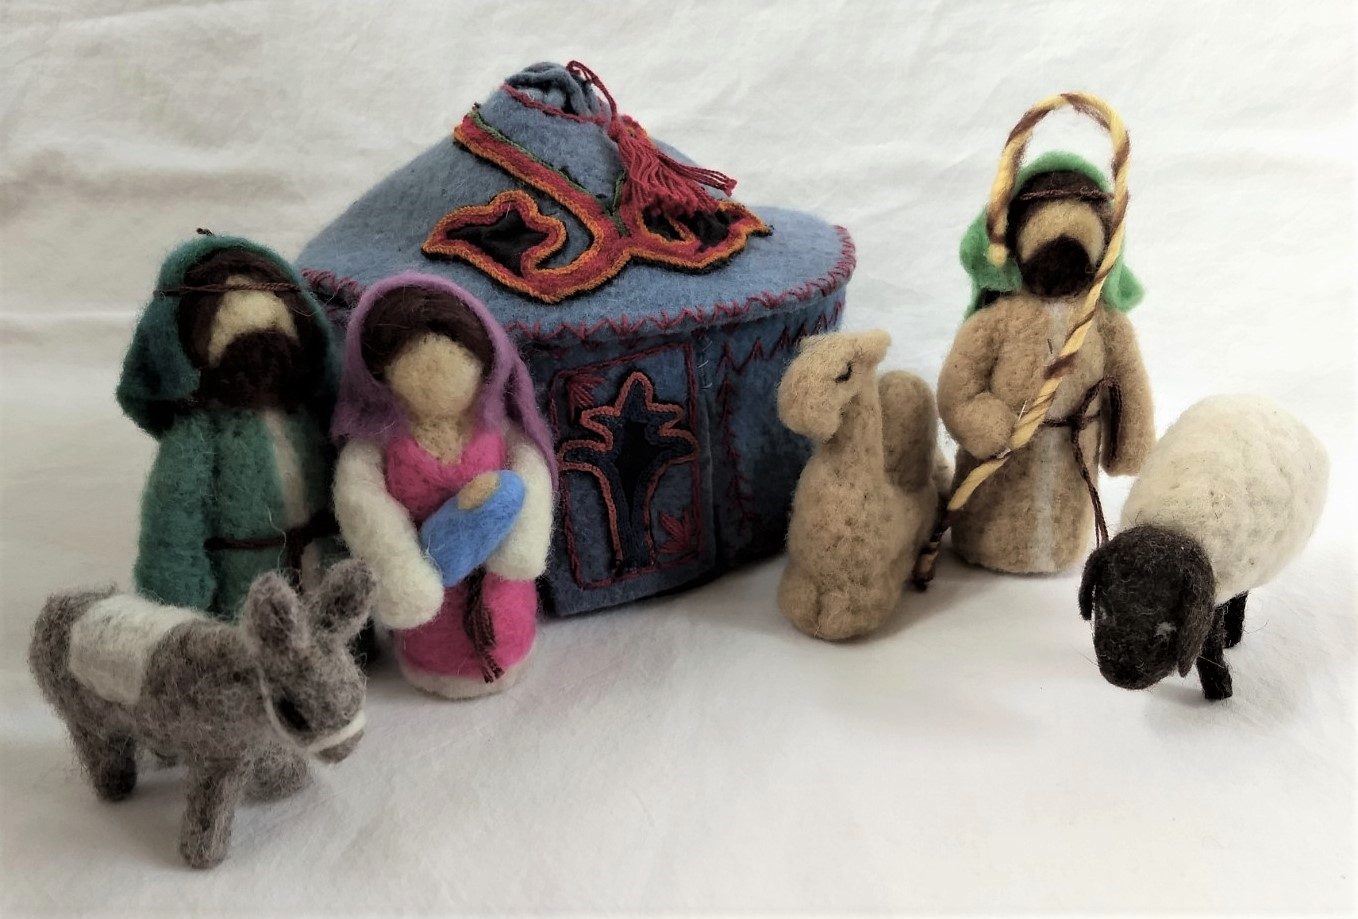 Needle Felted Nativity Set In Blue Yurt With Tush Kyiz Accents From Kyrgyzstan The Silk Road Fair Trade Market